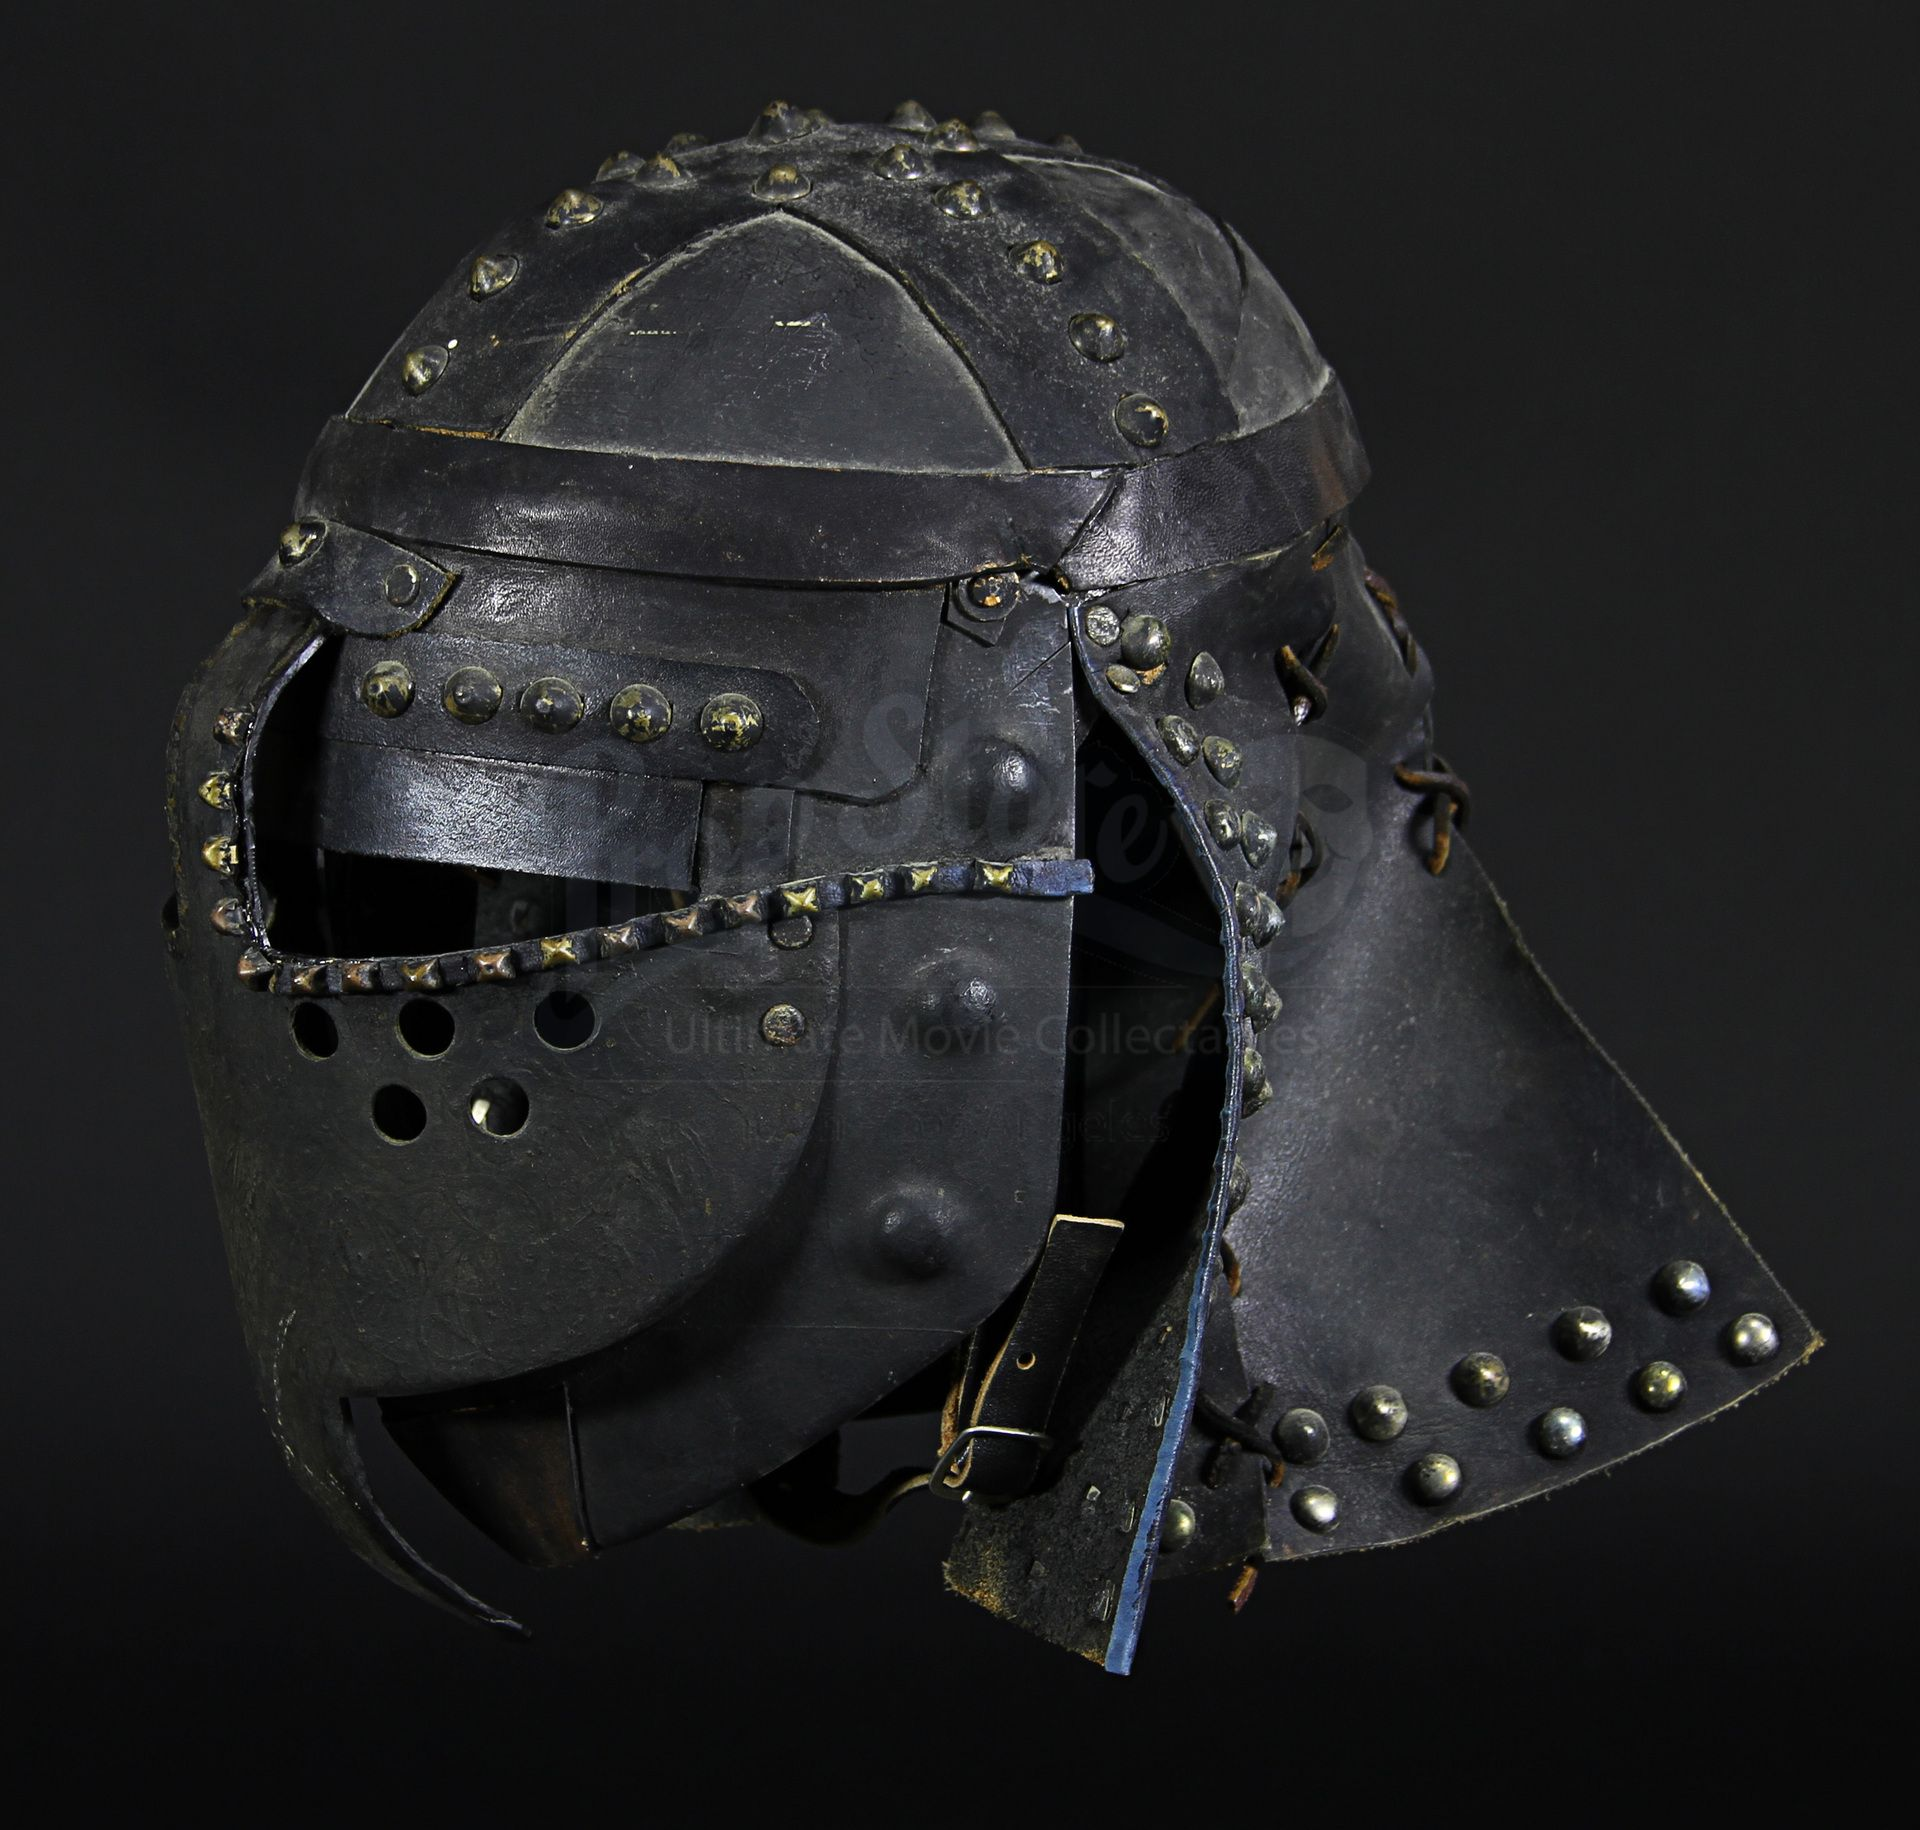 Robin Hood Prince Of Thieves Marion's (Mary Elizabeth Mastrantonio) Helmet A helmet worn in the production of the 1991 medieval adventure film Robin Hood: Prince of Thieves. Returning from the Third Crusade, nobleman Robin of Locksley (Kevin Costner) and his Arab comrade Azeem (Morgan Freeman) find England under the tyrannical rule of the usurping Sheriff of Nottingham (Alan Rickman).